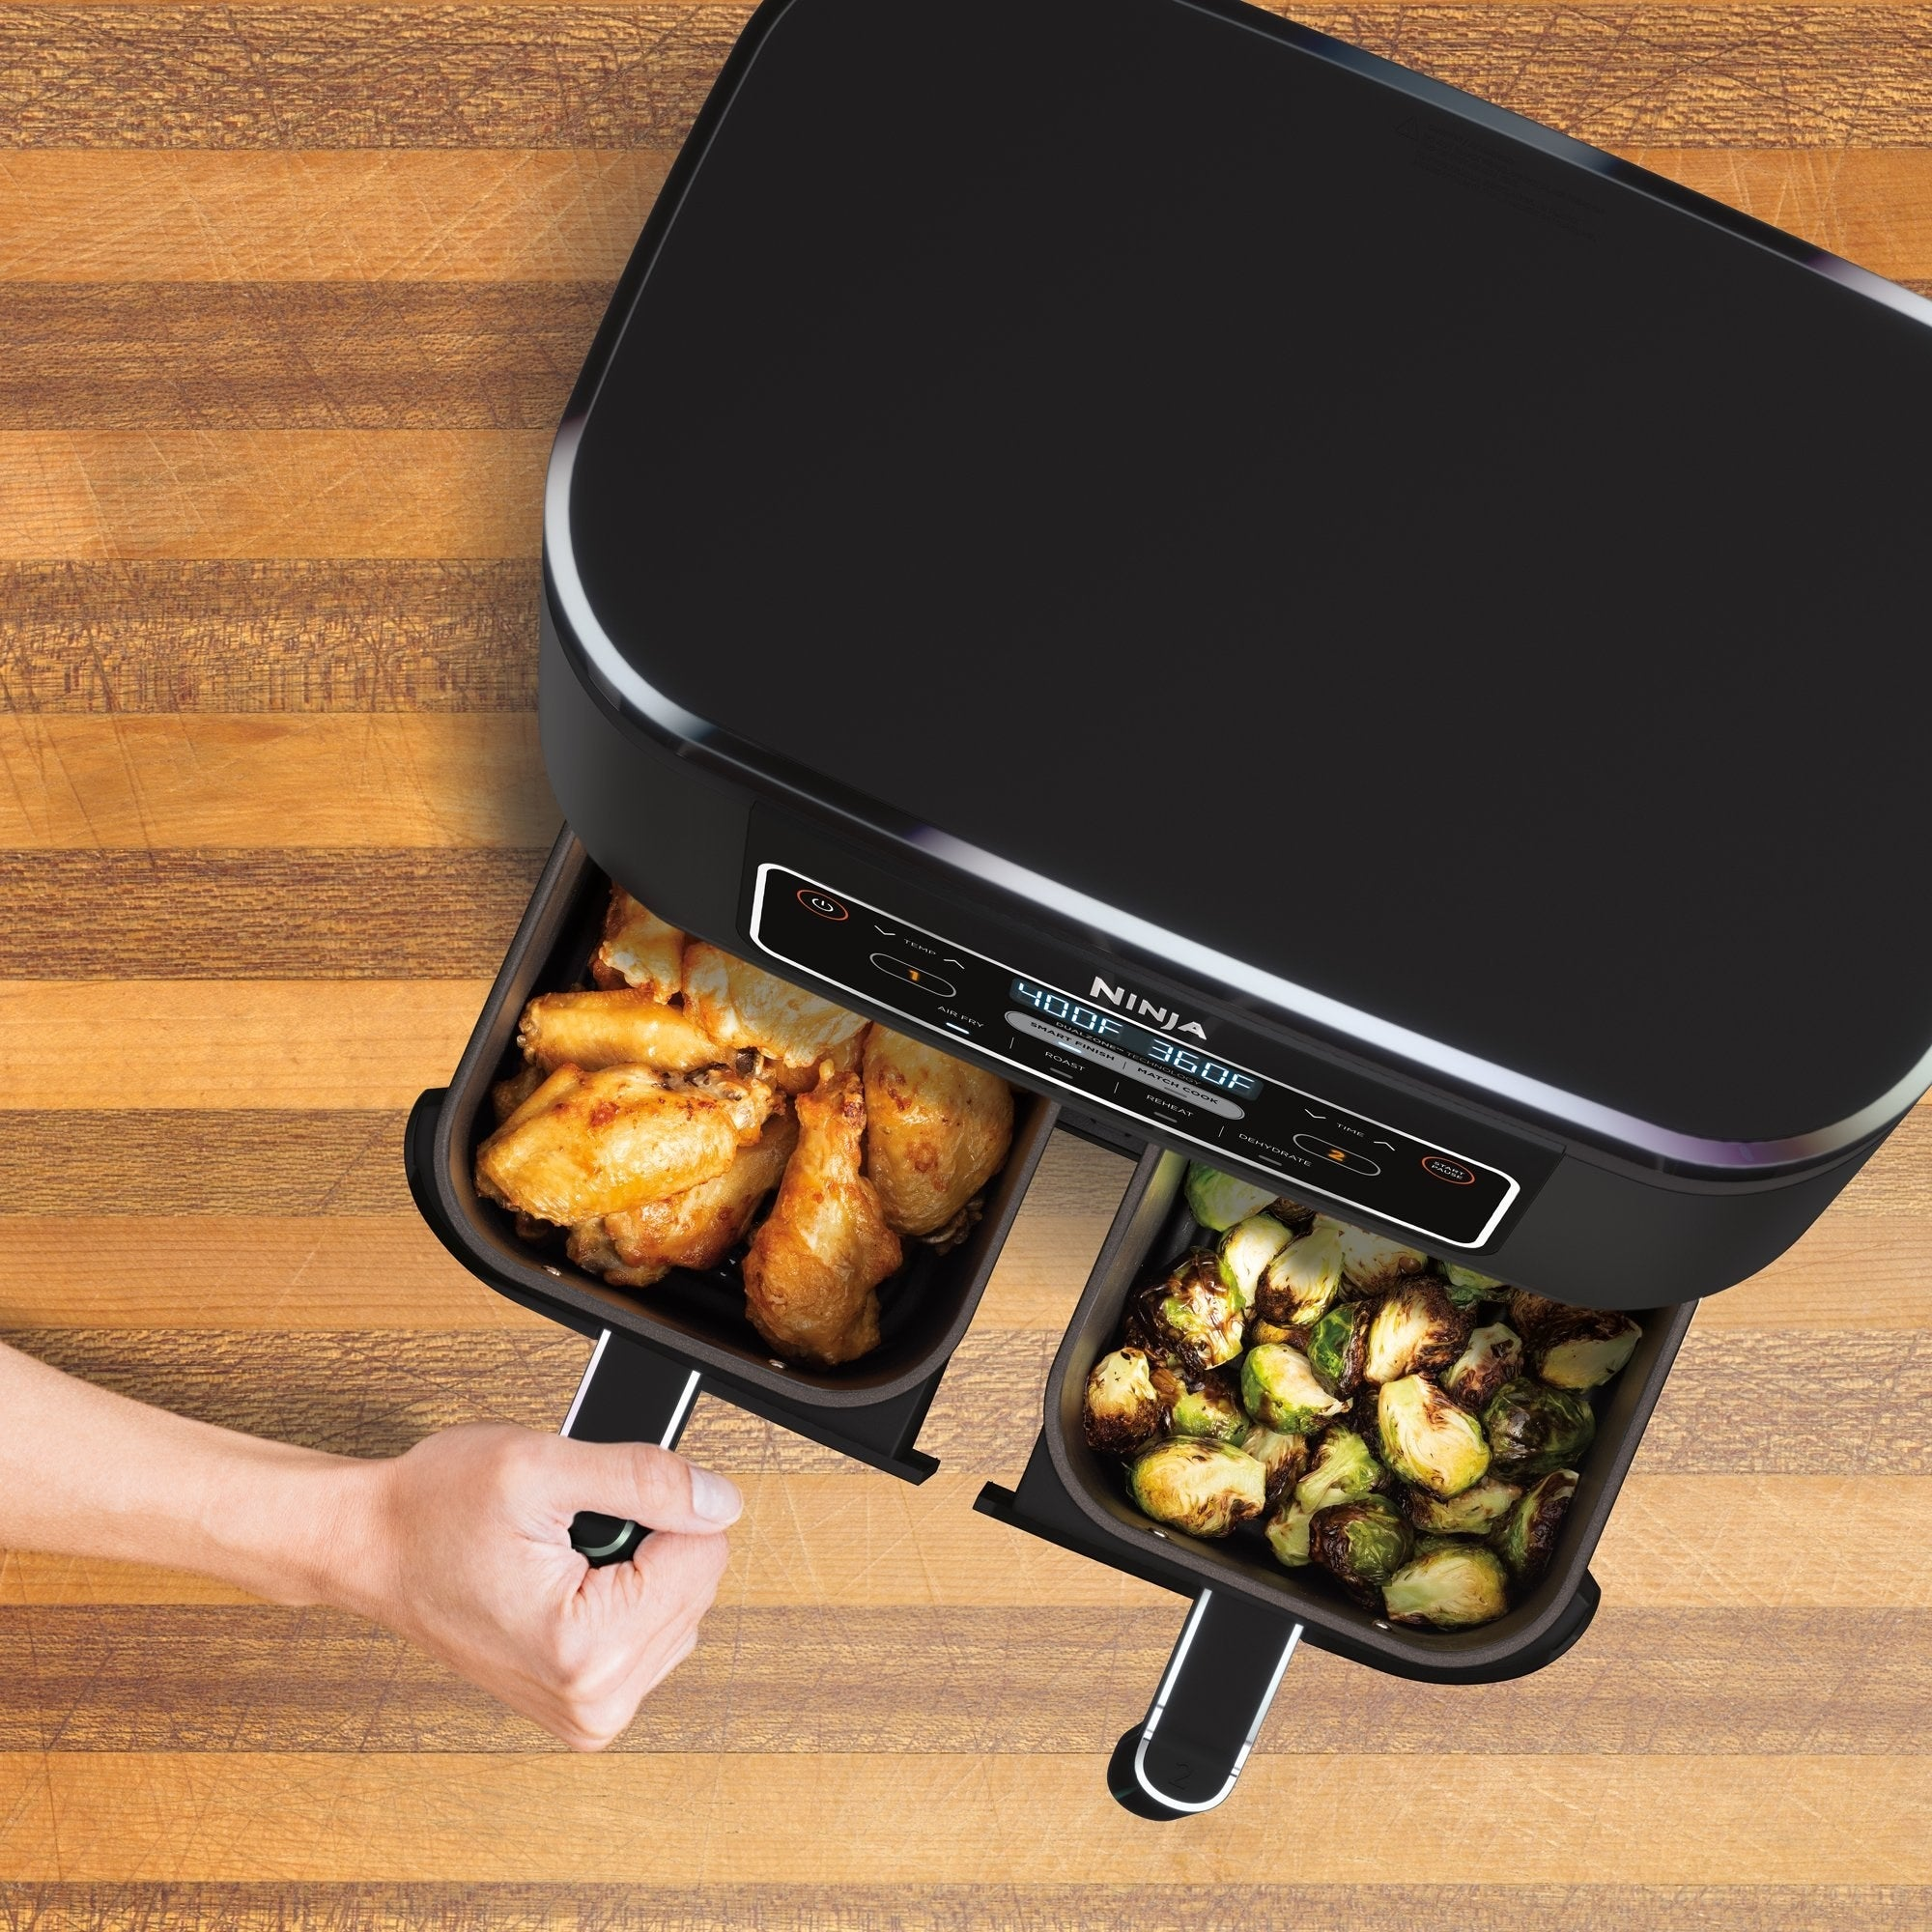 the air fryer with two compartments